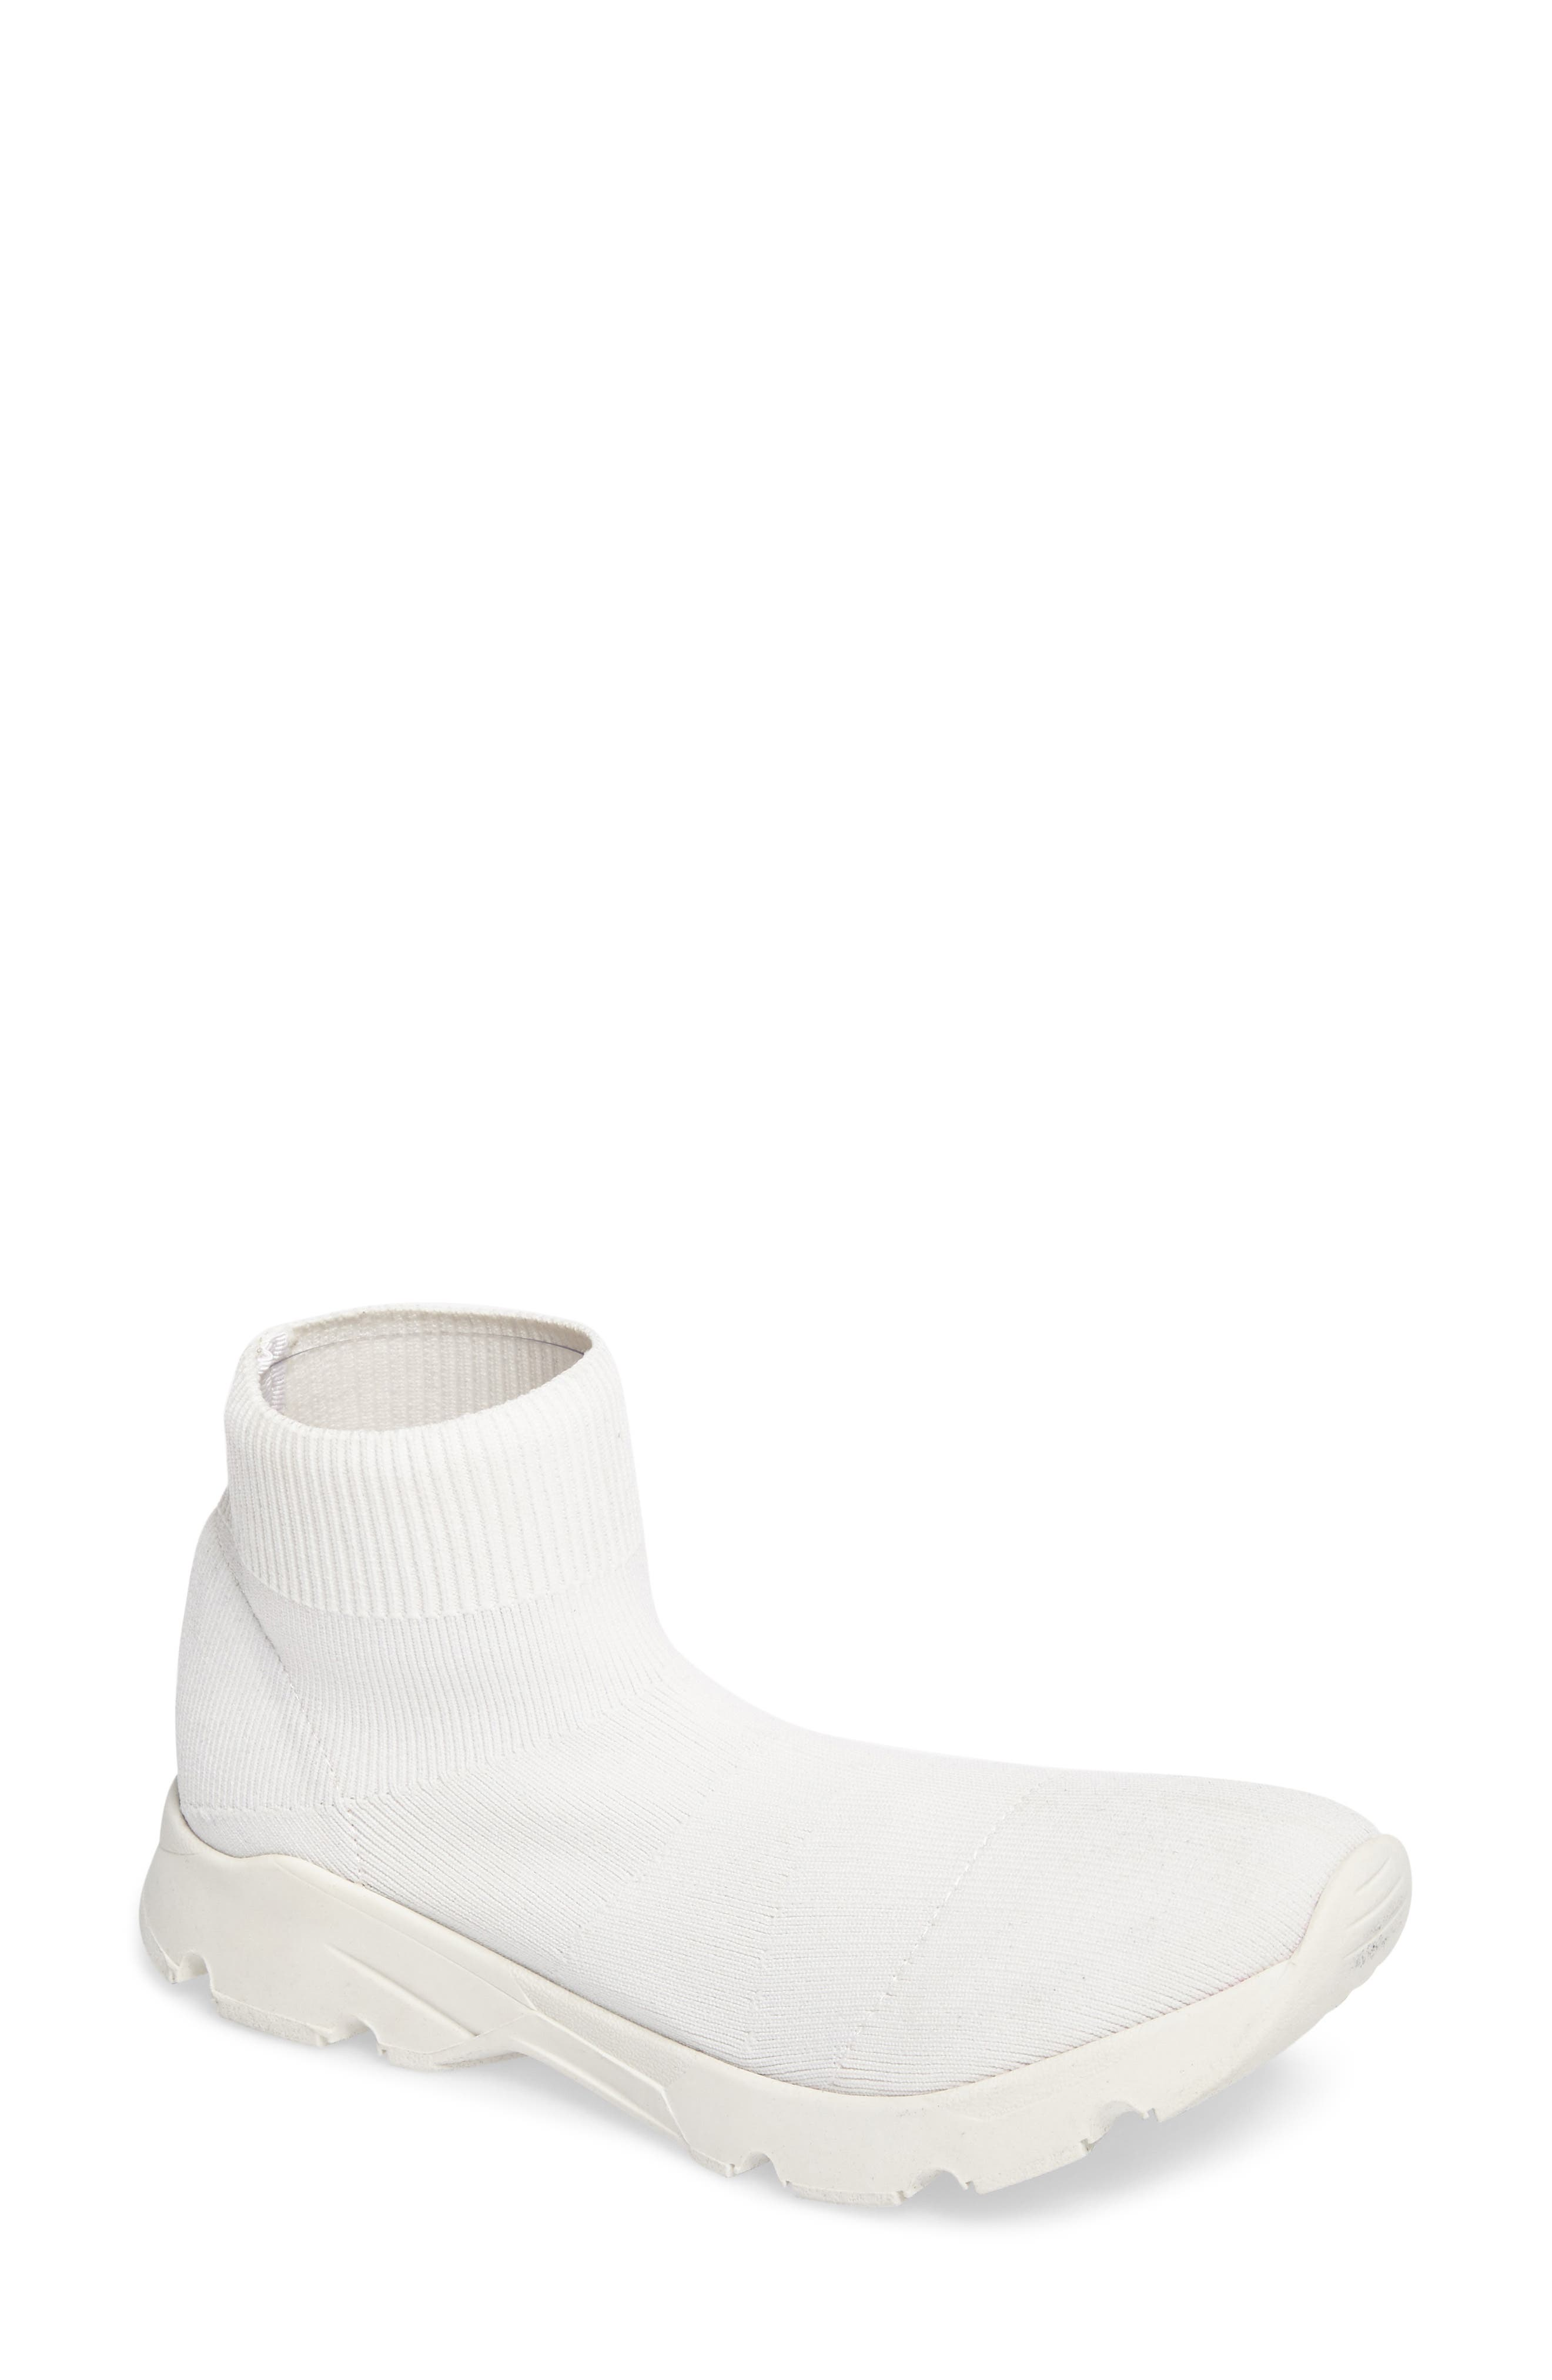 Winston Knit High Top Sneaker,                             Main thumbnail 1, color,                             White Vortex